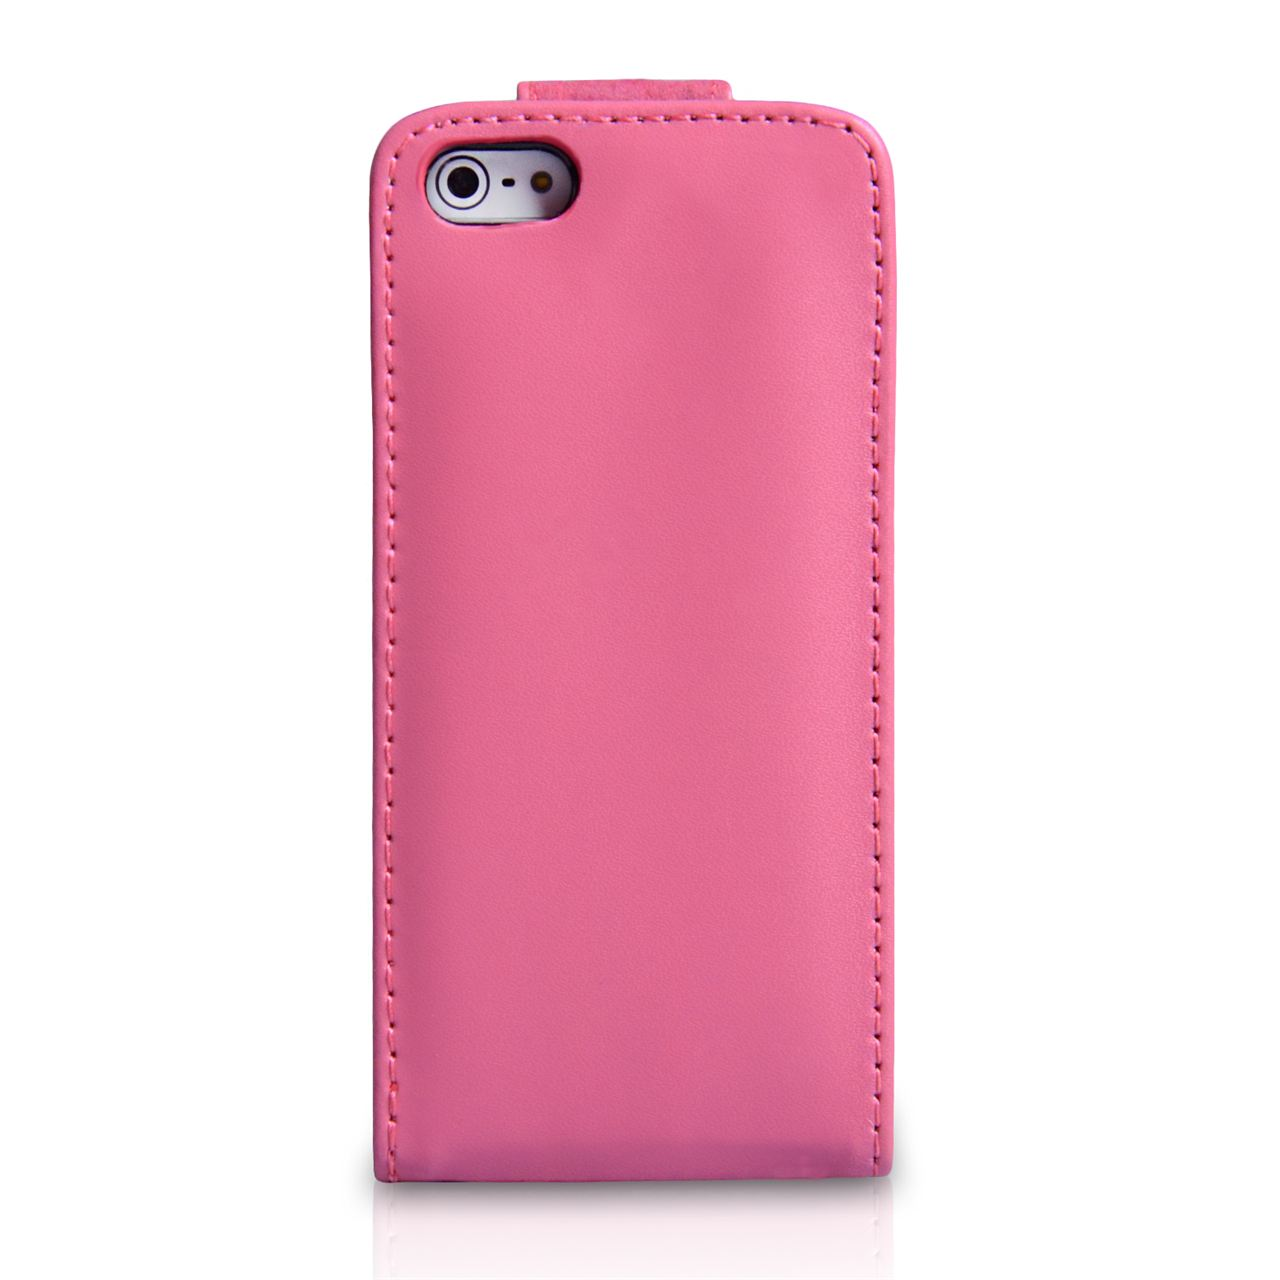 YouSave Accessories iPhone 5C Leather Effect Flip Case - Hot Pink